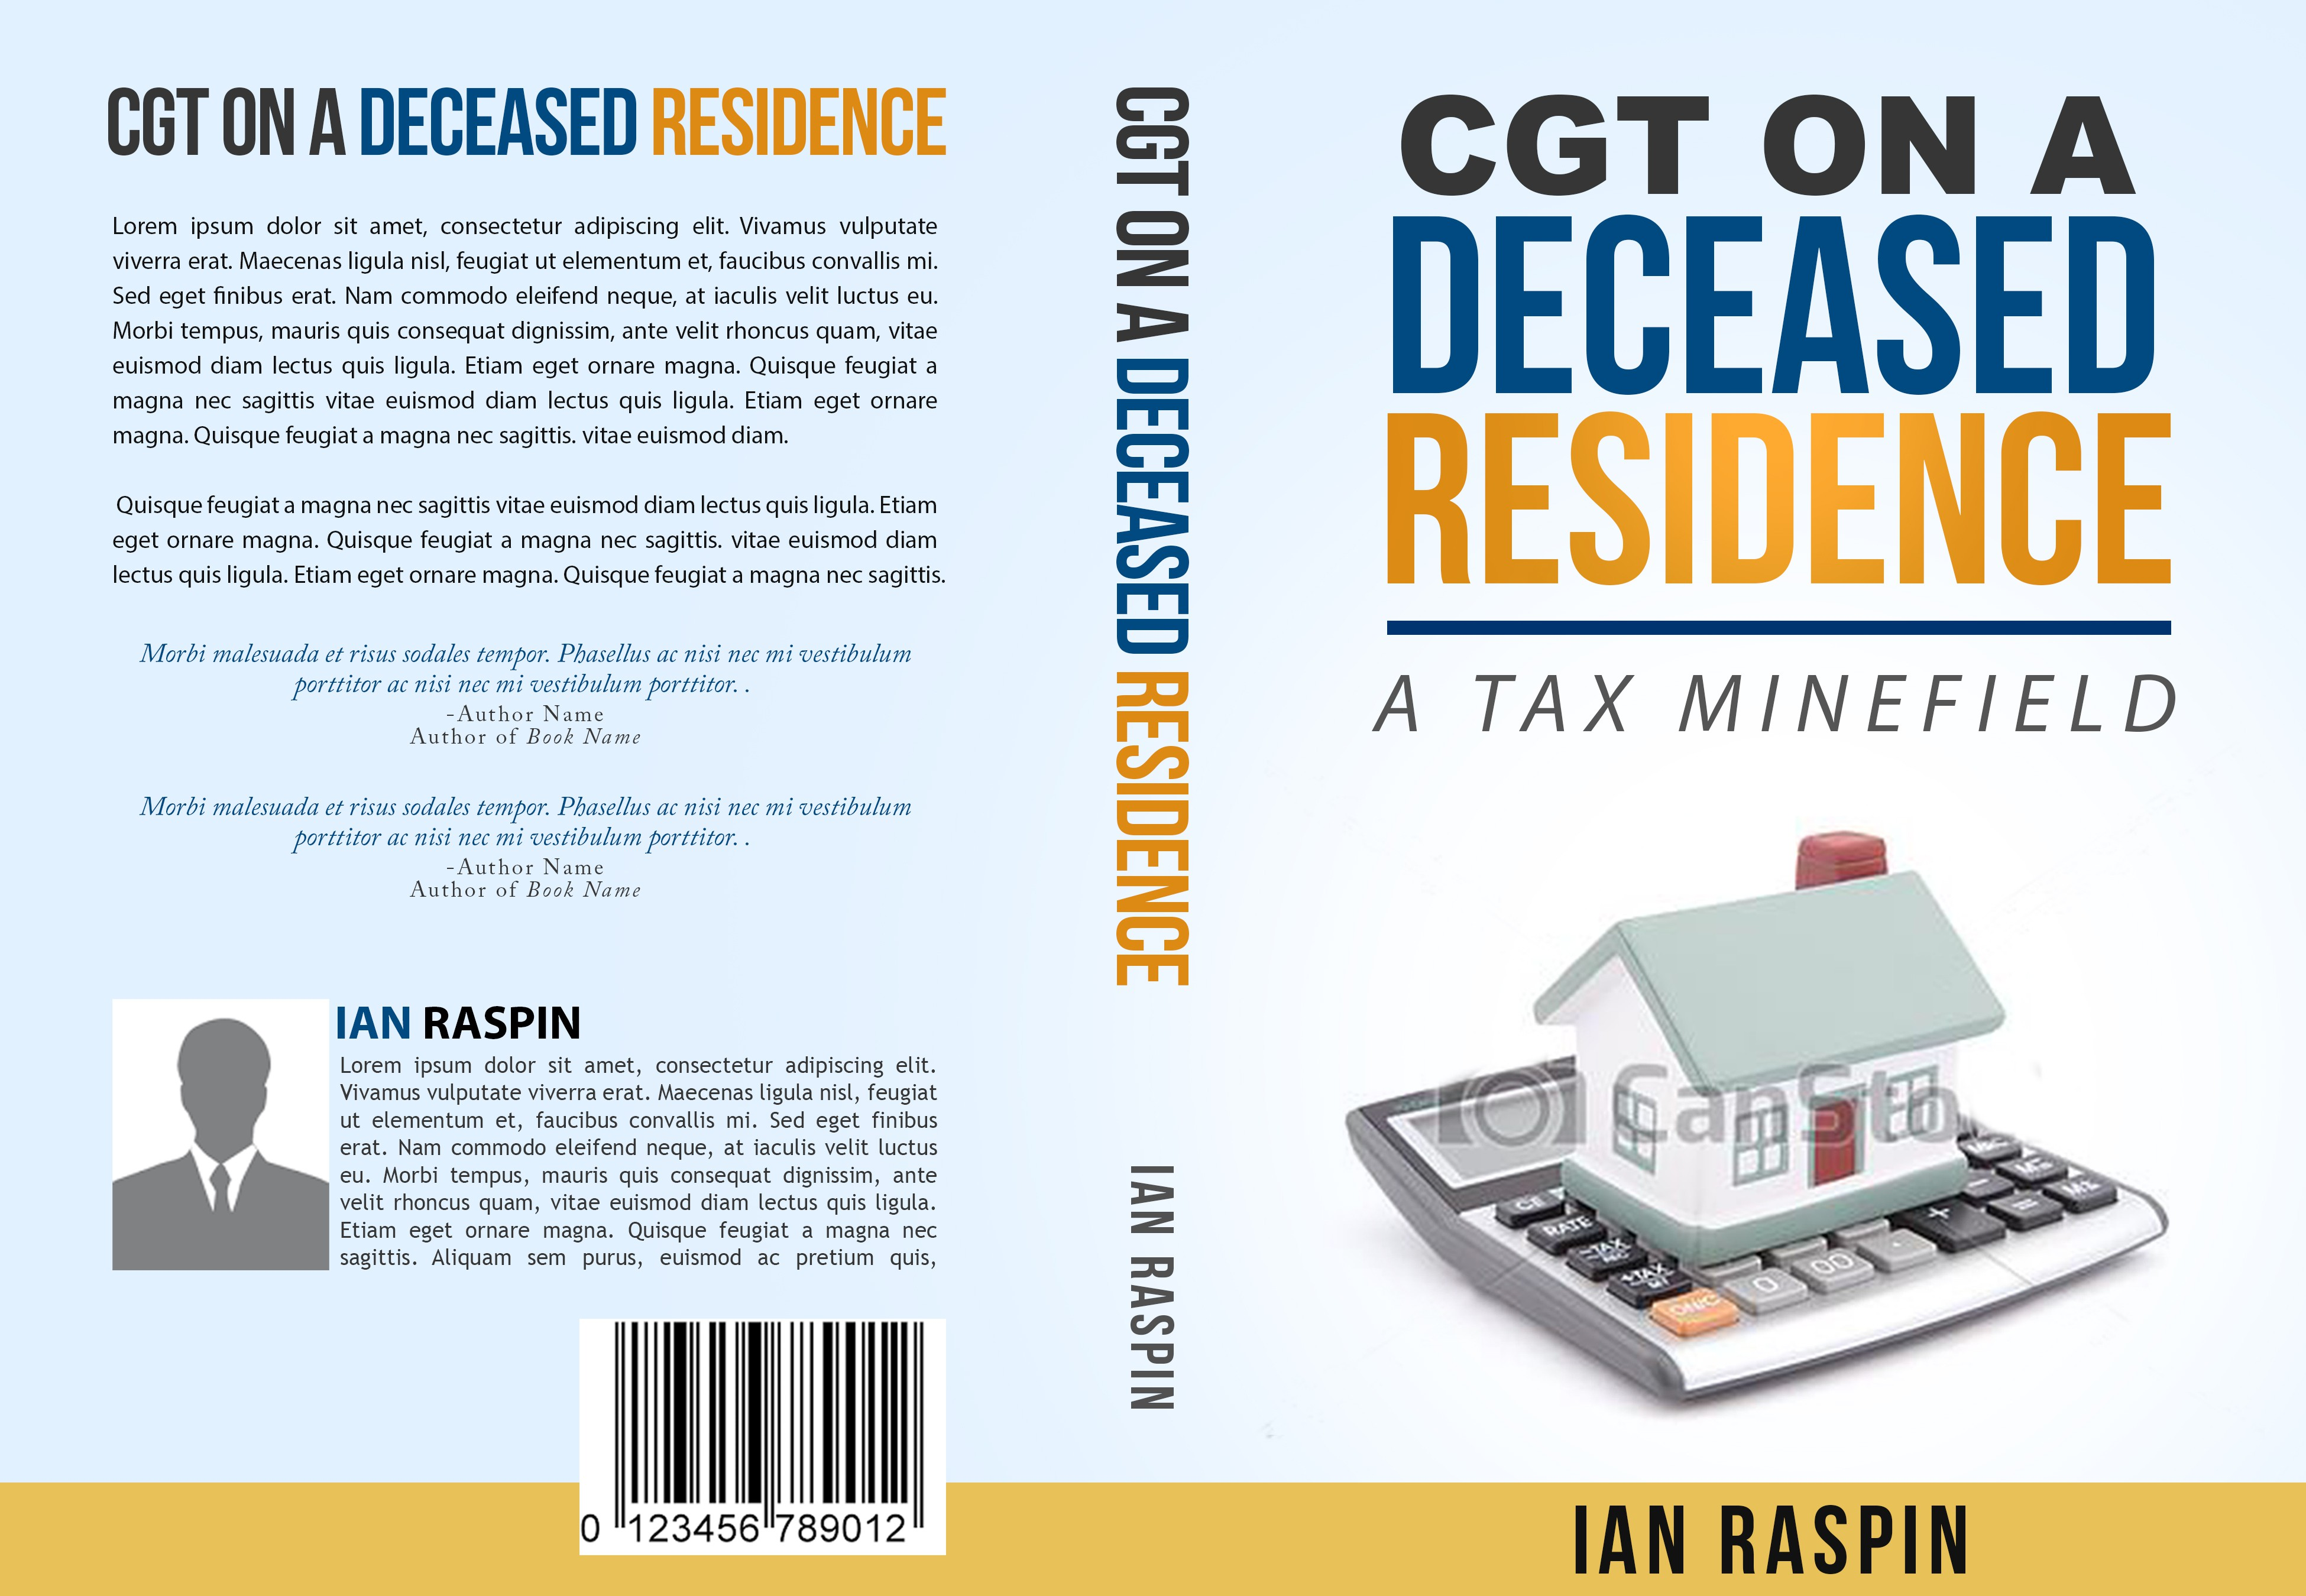 CGT on a Deceased Residence – a tax minefield!